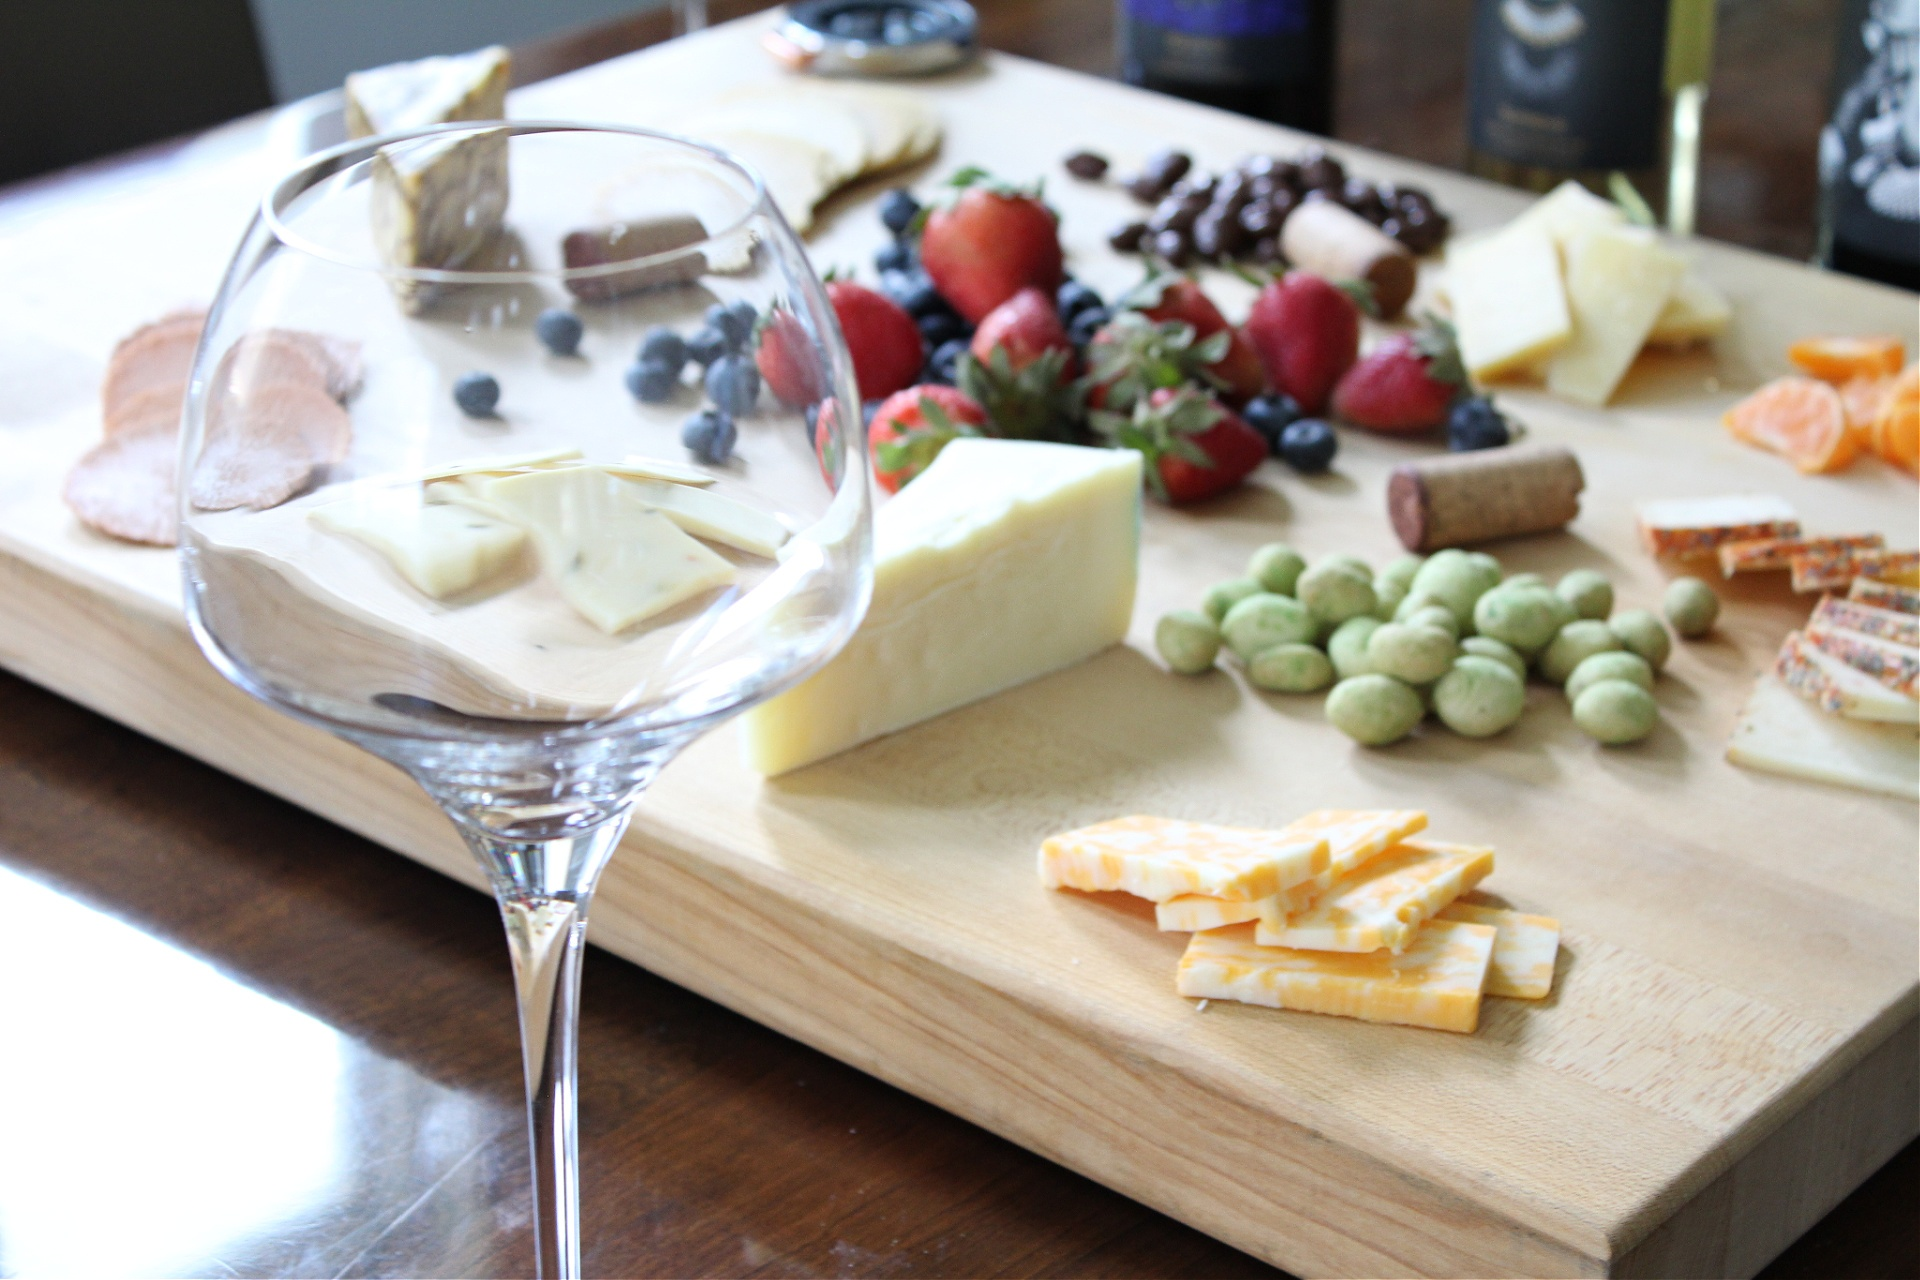 Hosting A Cheese and Wine Tasting Party